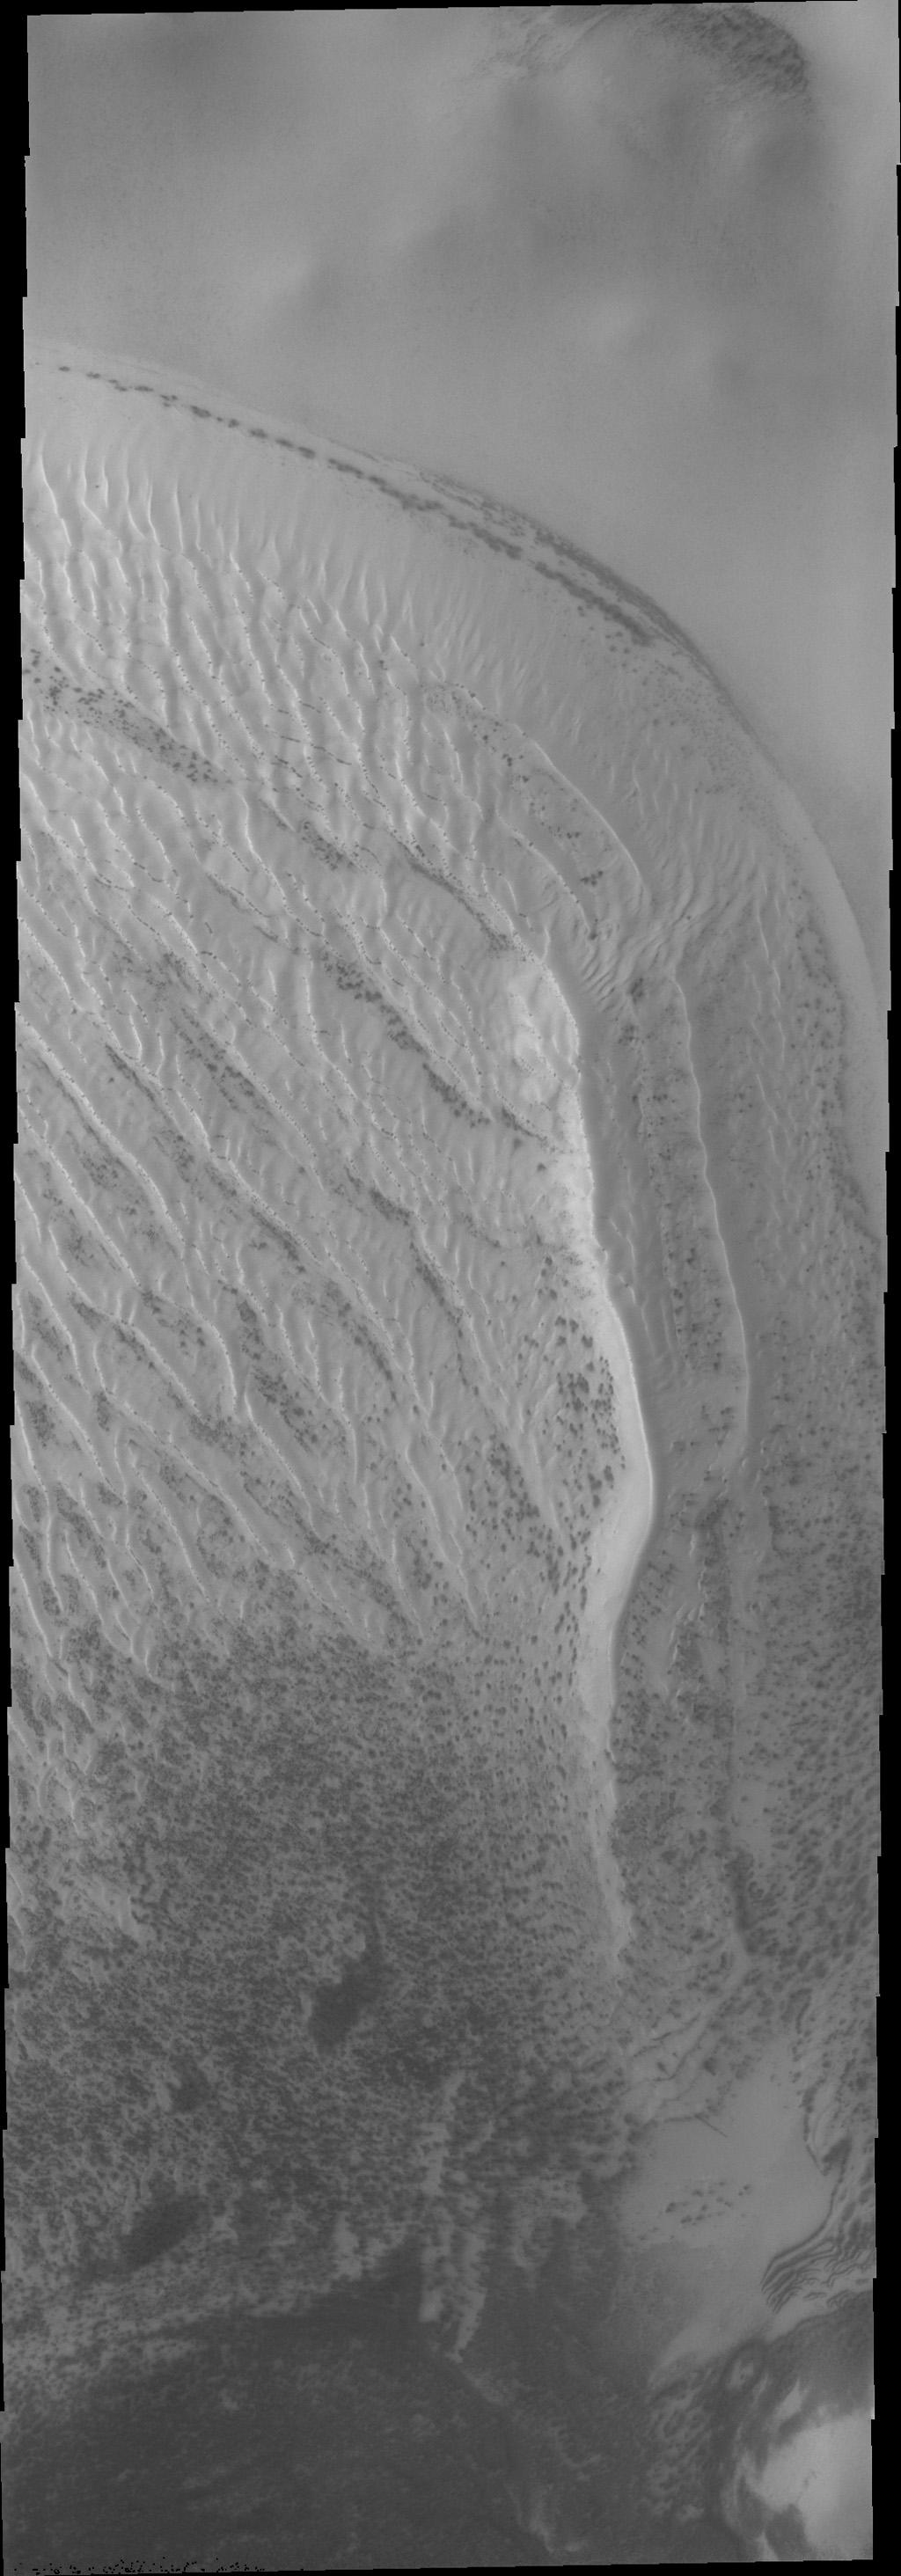 The dunes in Richardson crater, located at 72 degrees south latitude, are still covered in frost as seen by NASA's Mars Odyssey. The small dark spots are where the sun is beginning to remove the ice and reveal the darker dune materials below.